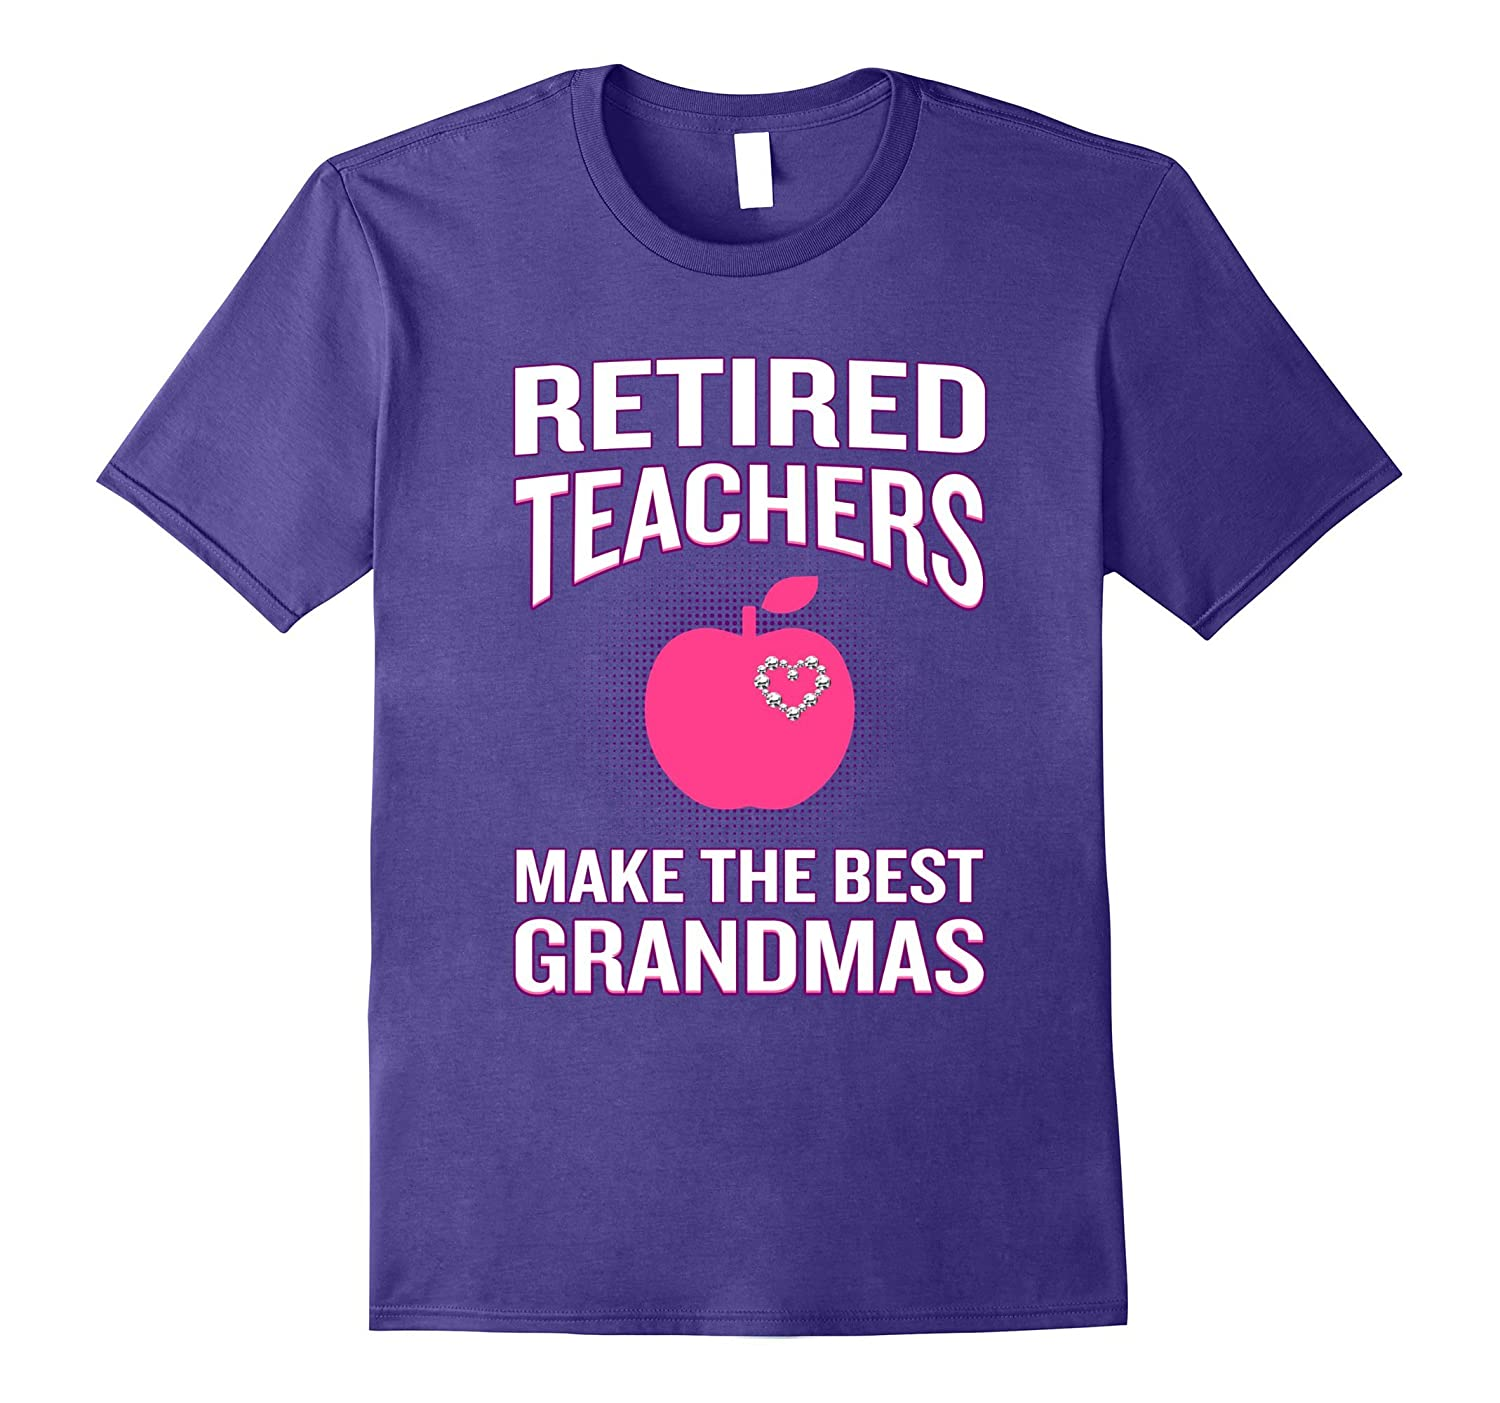 Retired Teachers Make The Best Grandmothers Funny T-Shirt-Vaci